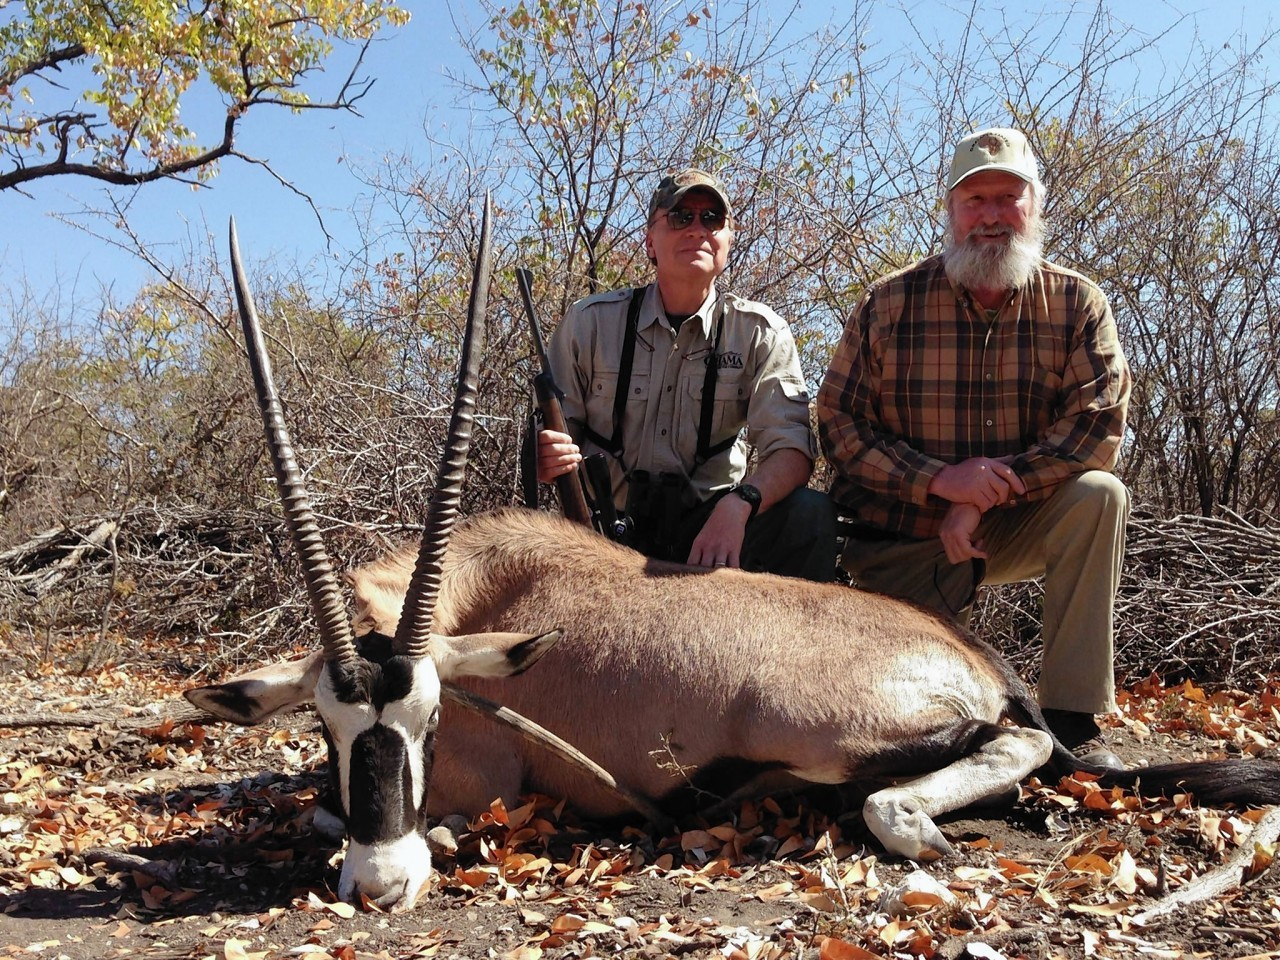 Peter Swales (right) on a hunt in Africa